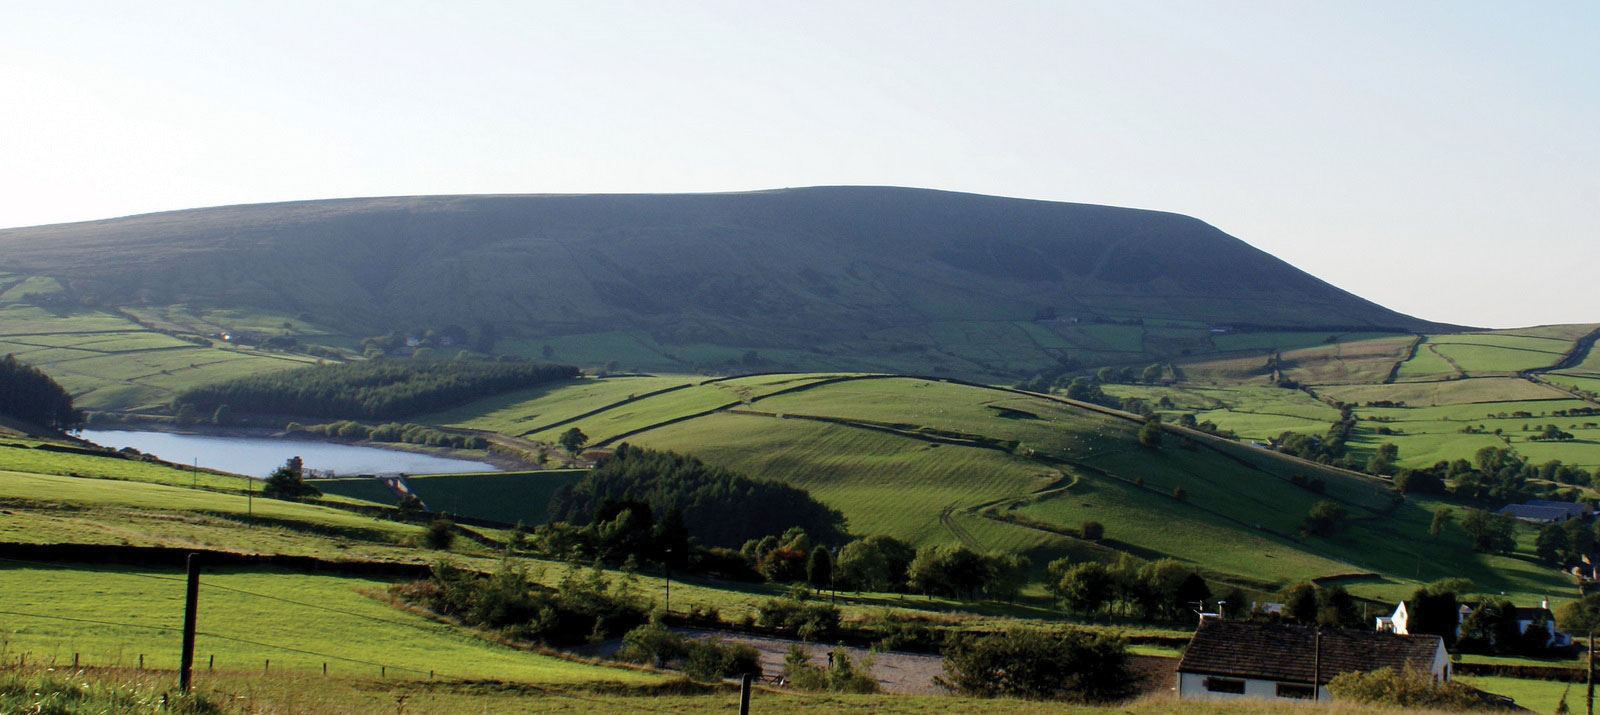 A photo of the Lancashire countryside